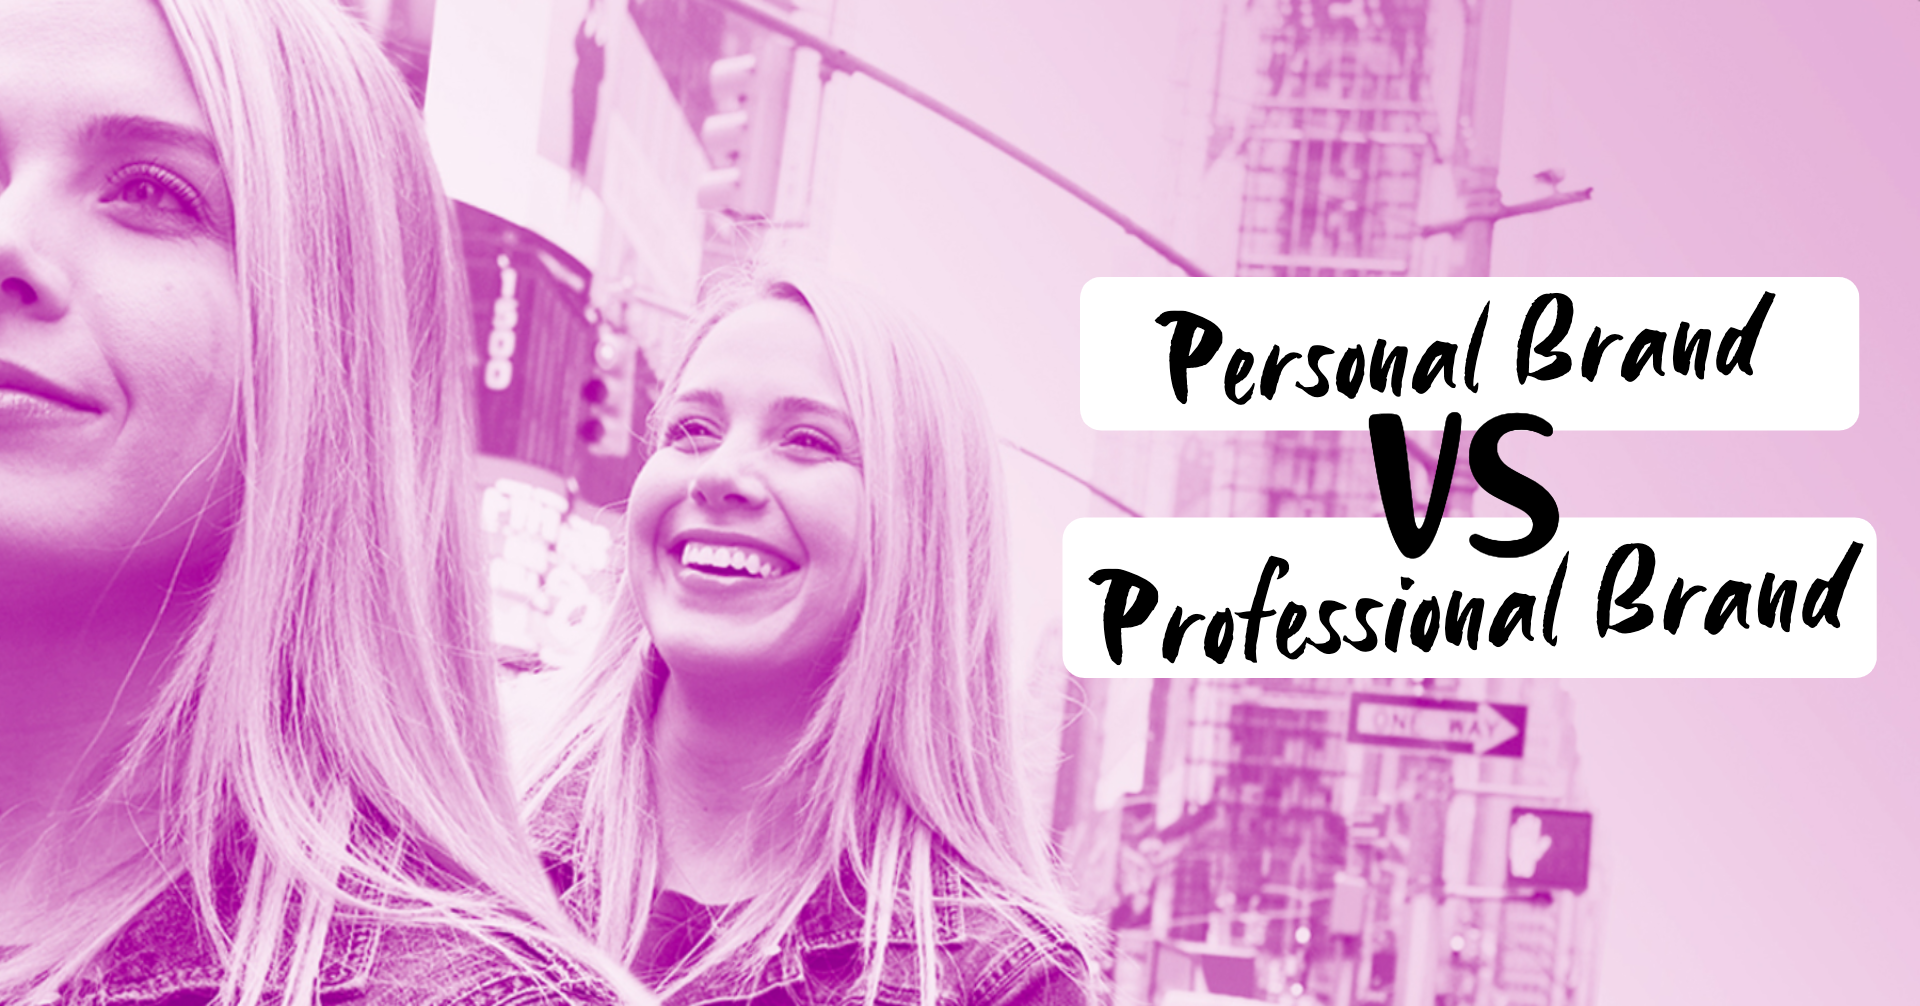 How Your Personal Brand Influences Your Professional Brand